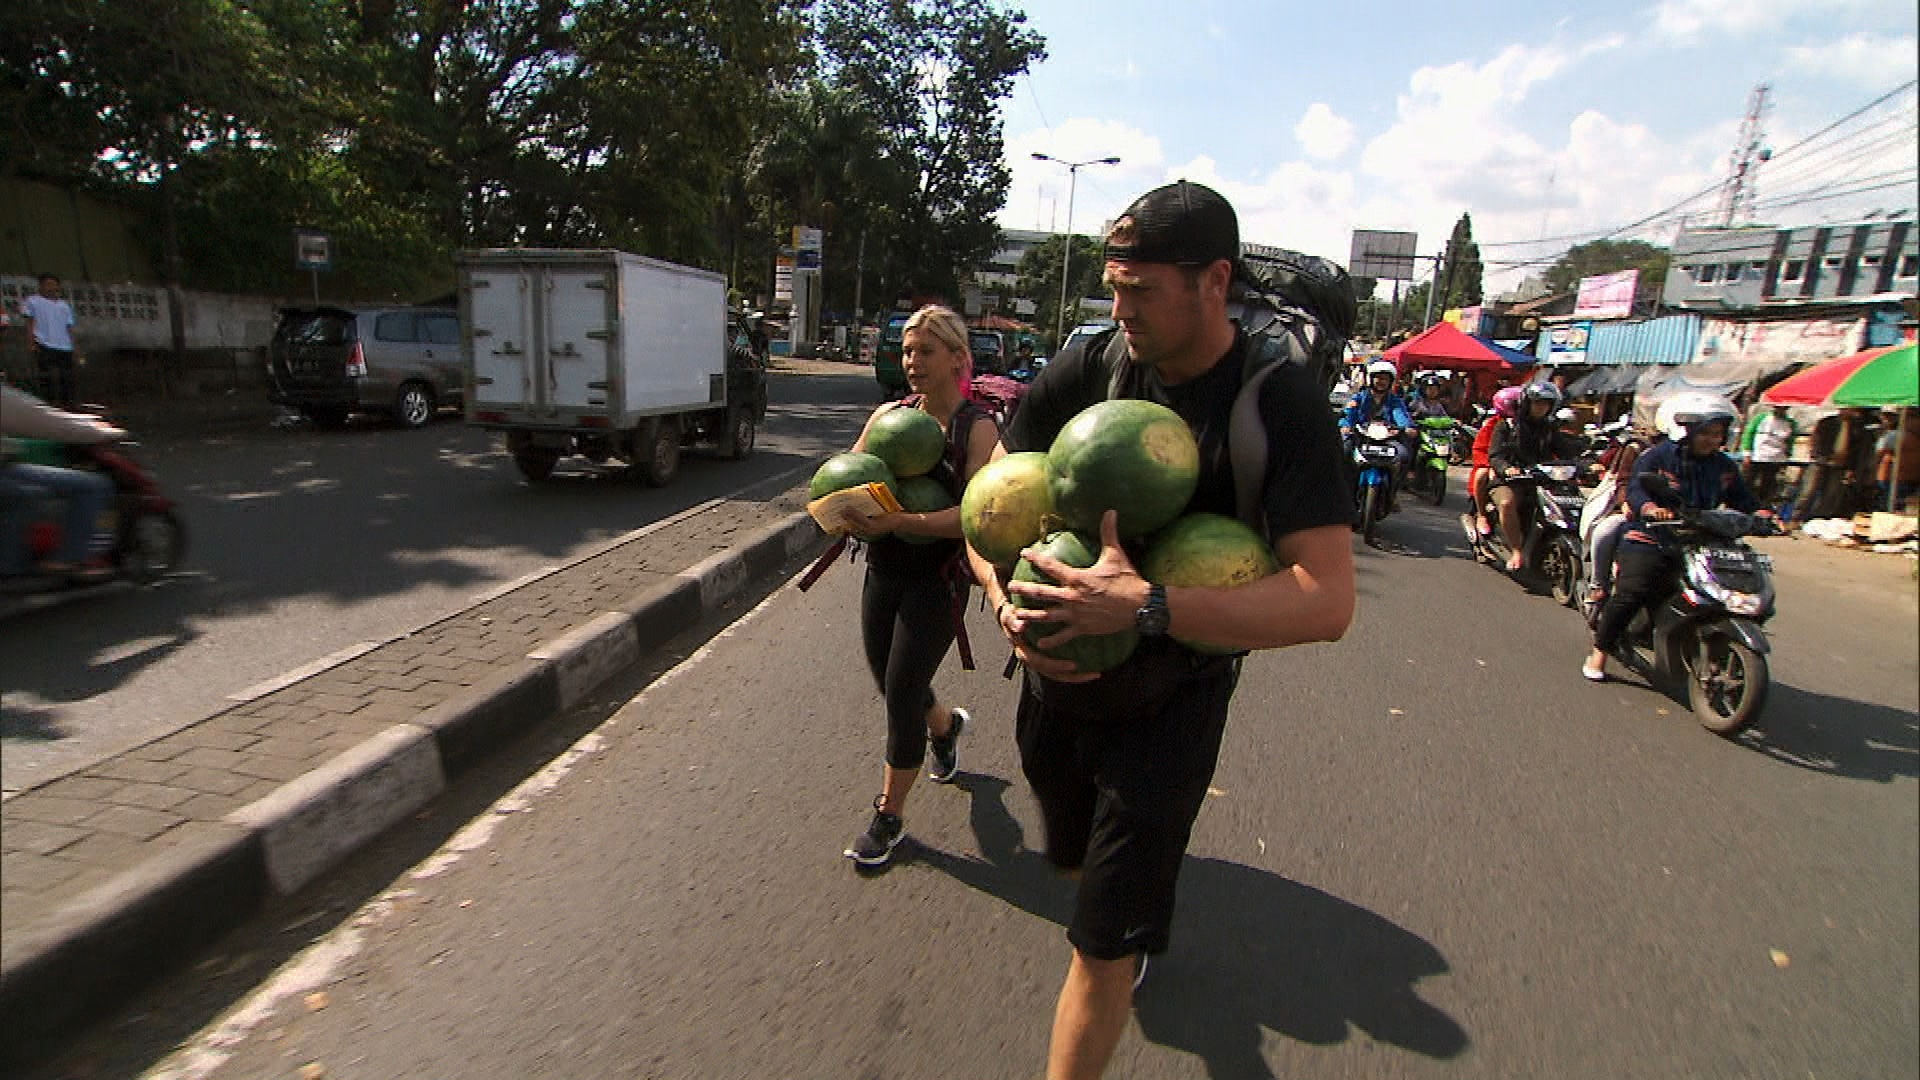 Carrying food in Season 23 Episode 9